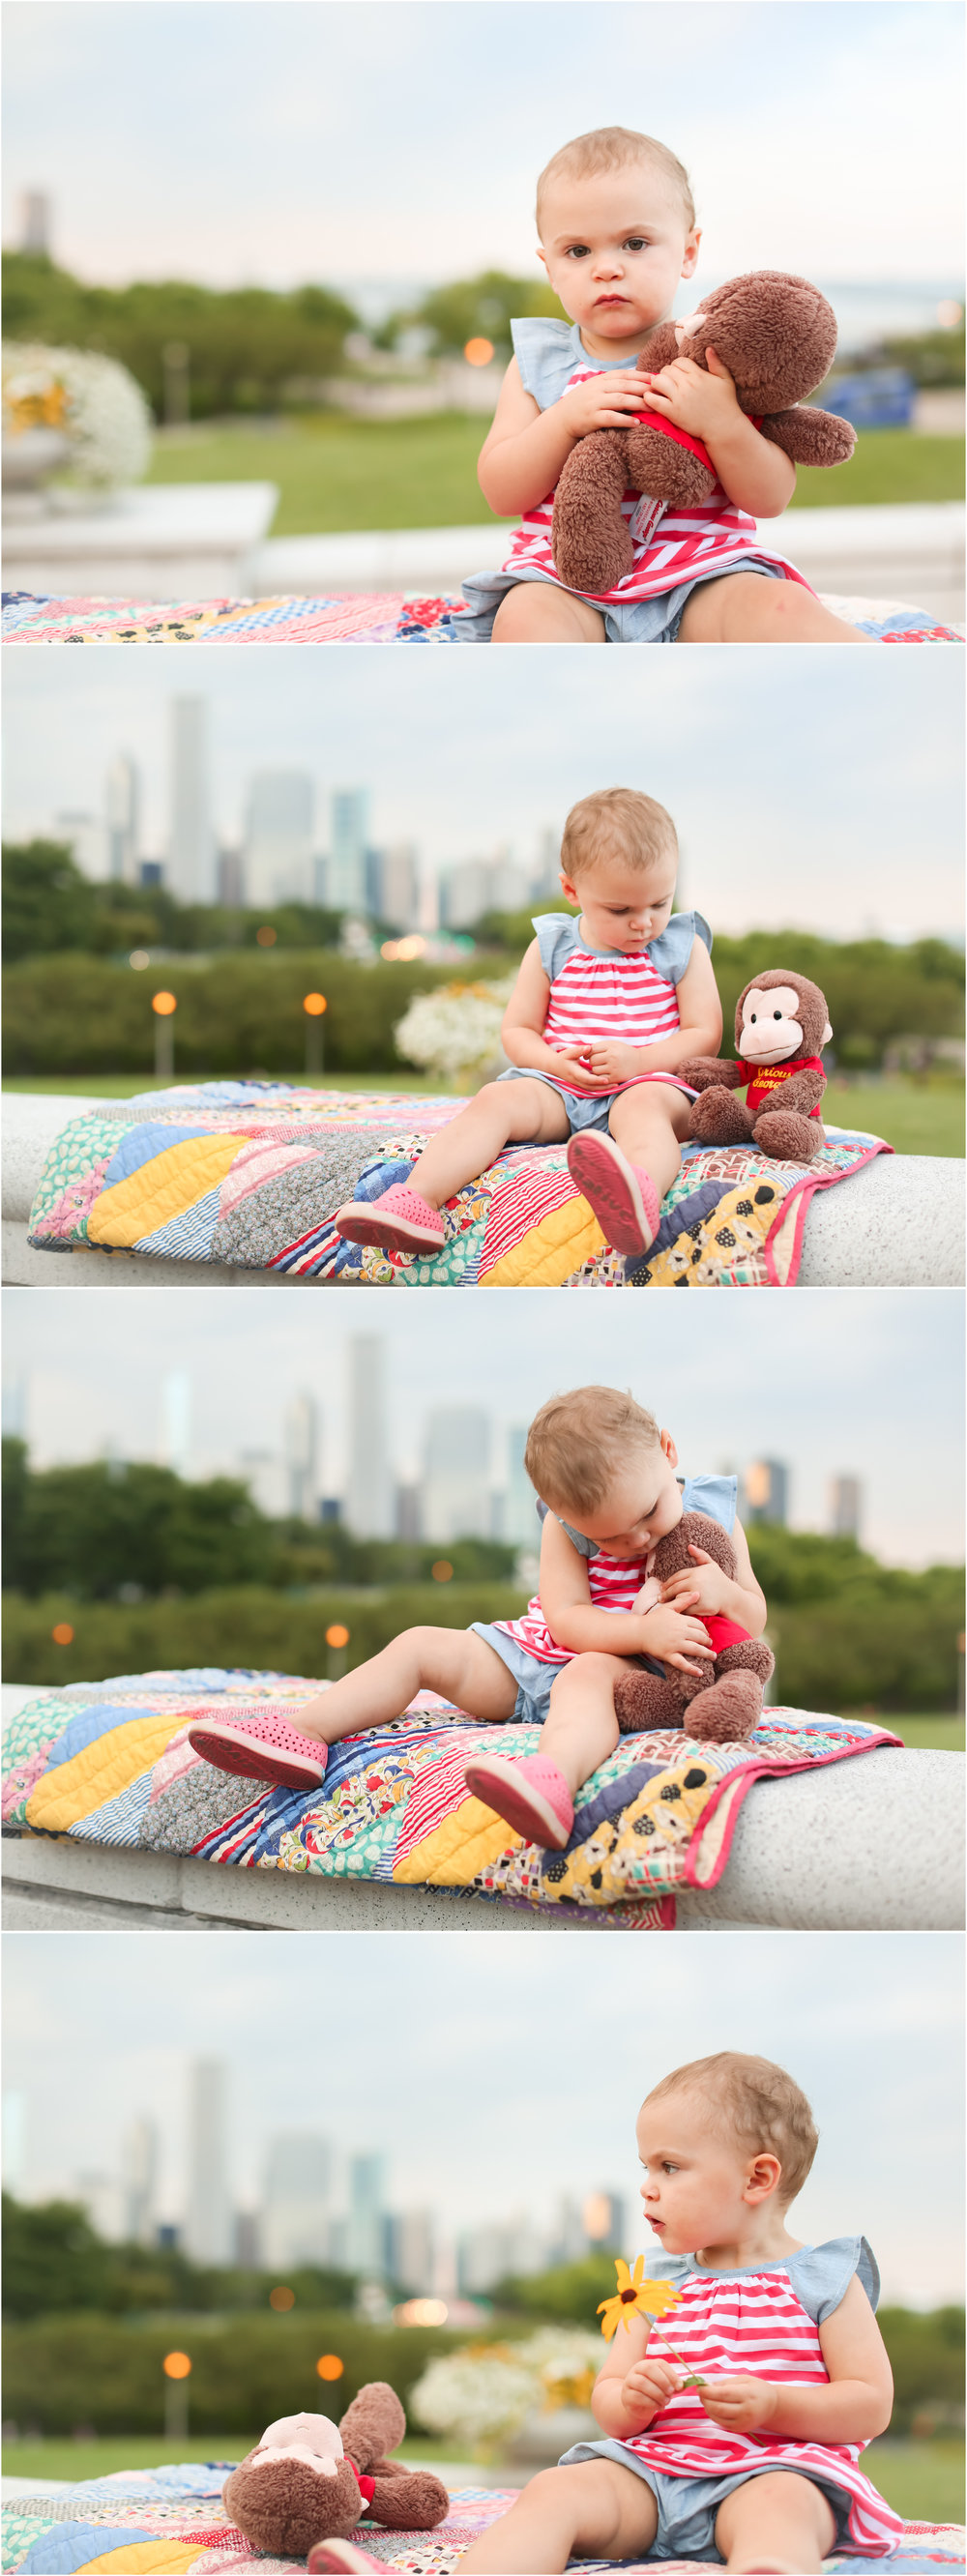 jenny grimm chicago child lifestyle photographer